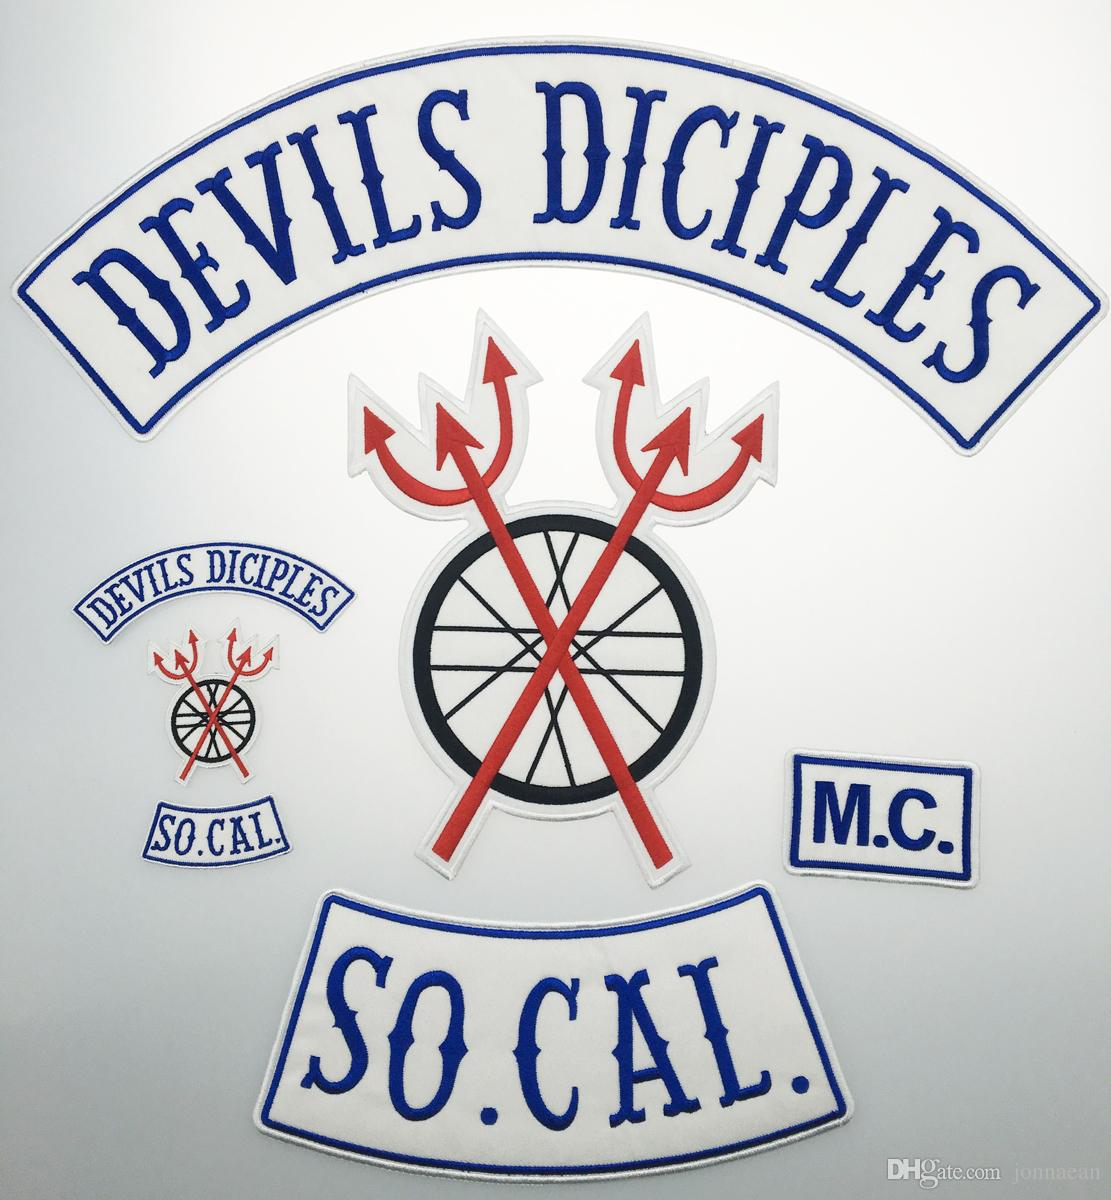 "Full BACK LARGE SIZE DEVILS SICIPLES SETS Motorcycle Biker Patch IRON ON SEW ON JACKET VEST 18"" PATCH"